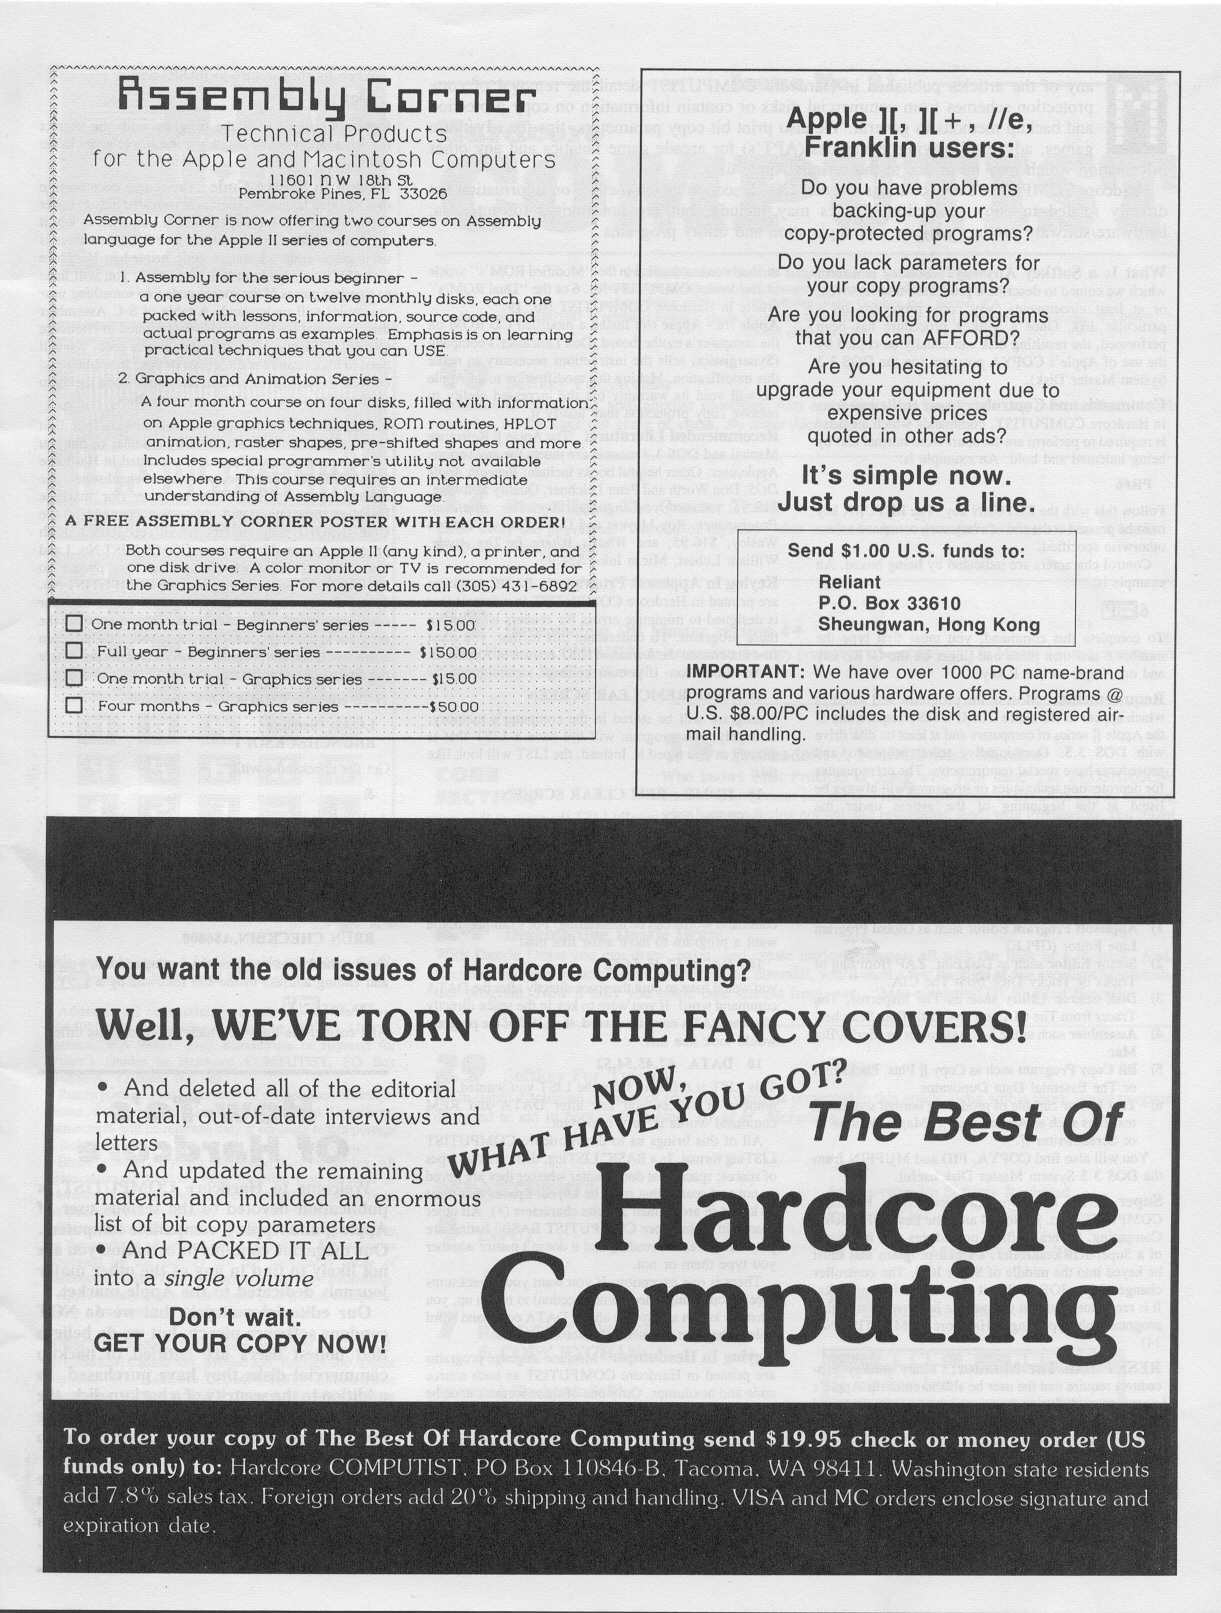 Apple hardcore computist